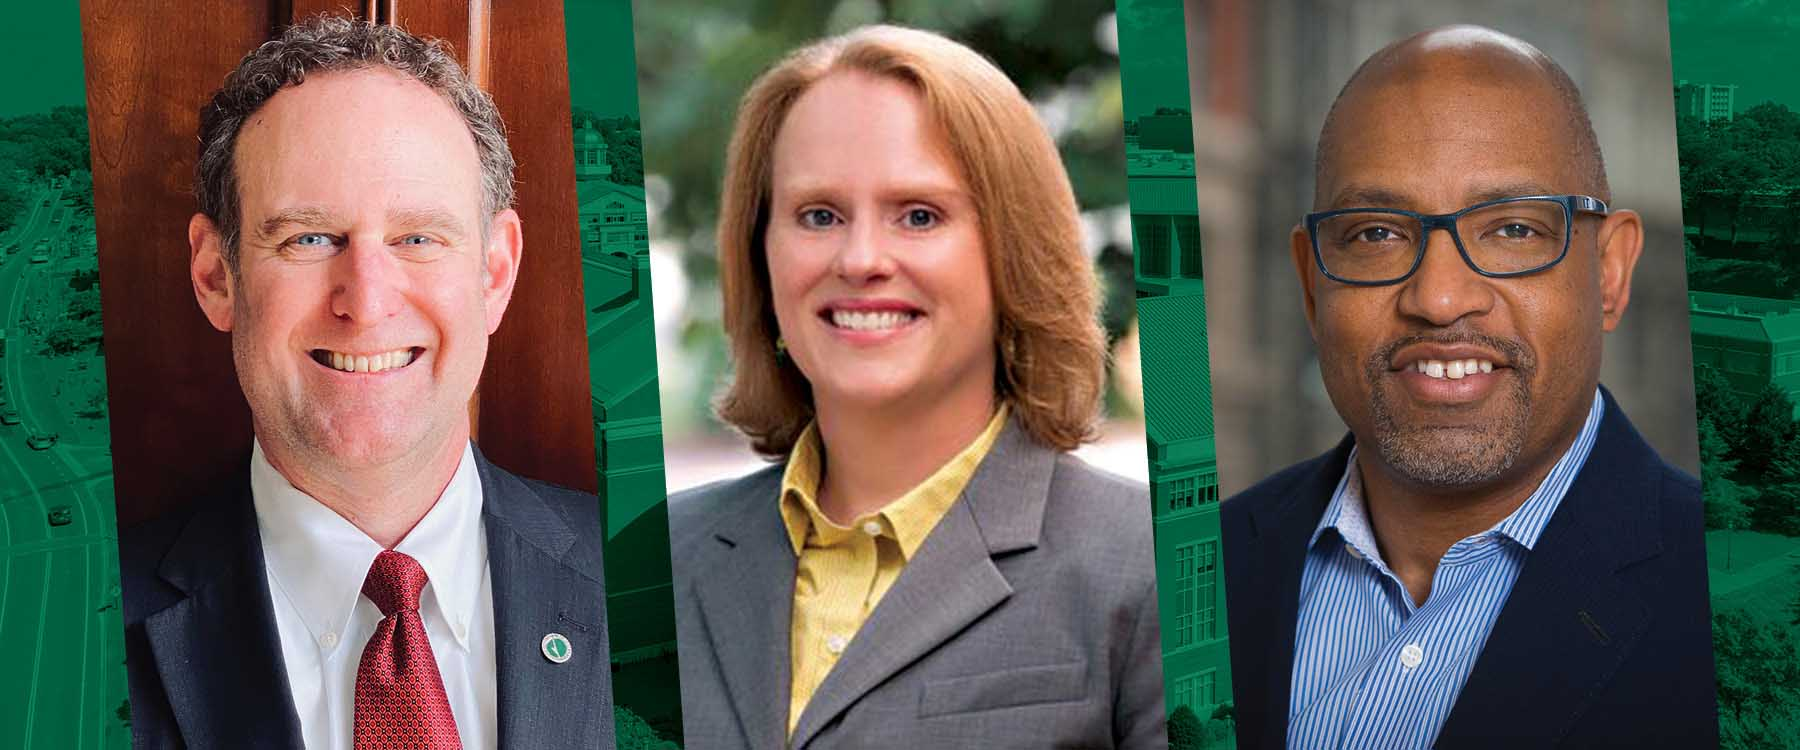 New leaders named for Engineering, Business and Office of Urban Research and Community Engagement